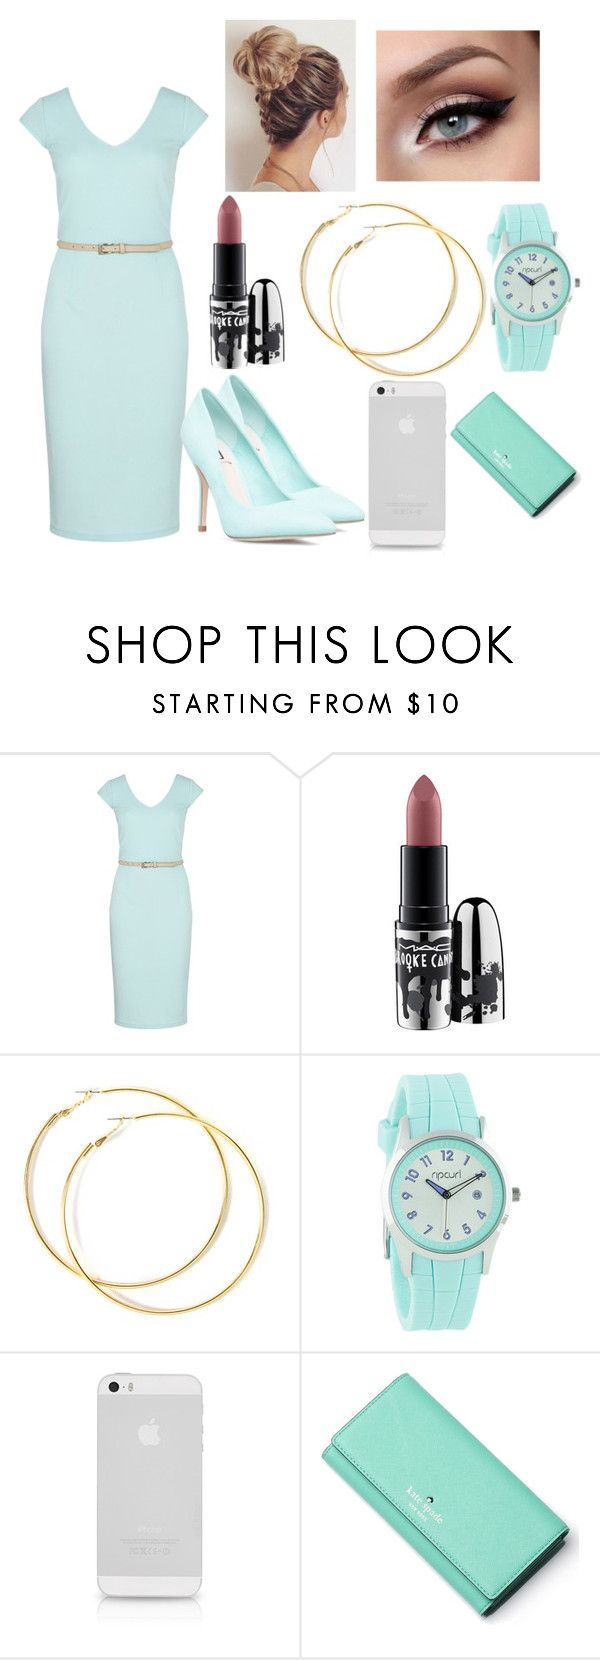 """""""Untitled #590"""" by madhatter-000122334455 ❤ liked on Polyvore featuring Sugarhill Boutique, MAC Cosmetics, Rip Curl and Kate Spade"""